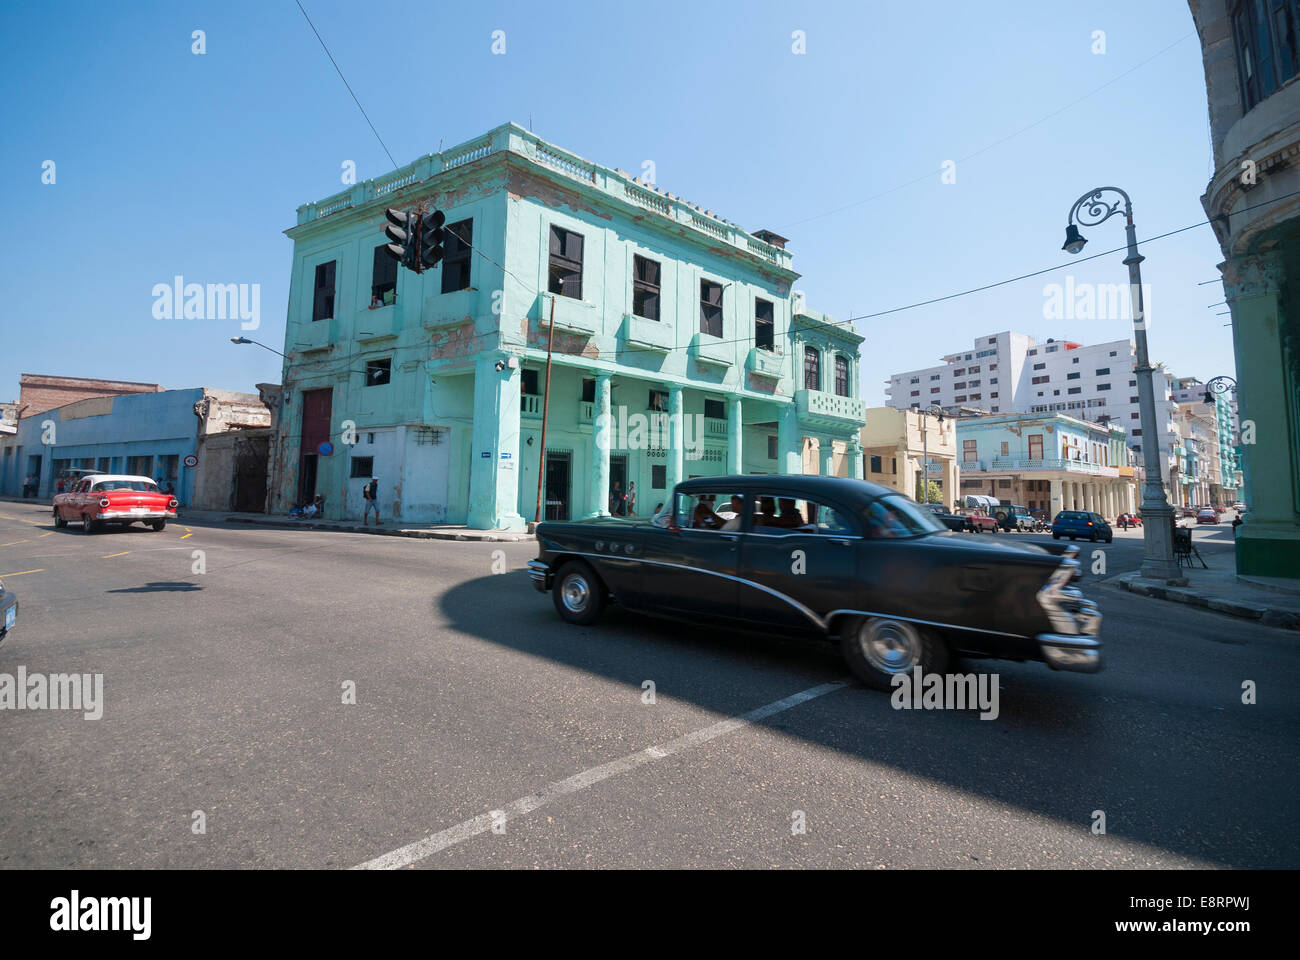 Two vintage American cars speed through an intersection in a central Havana neighborhood. Stock Photo